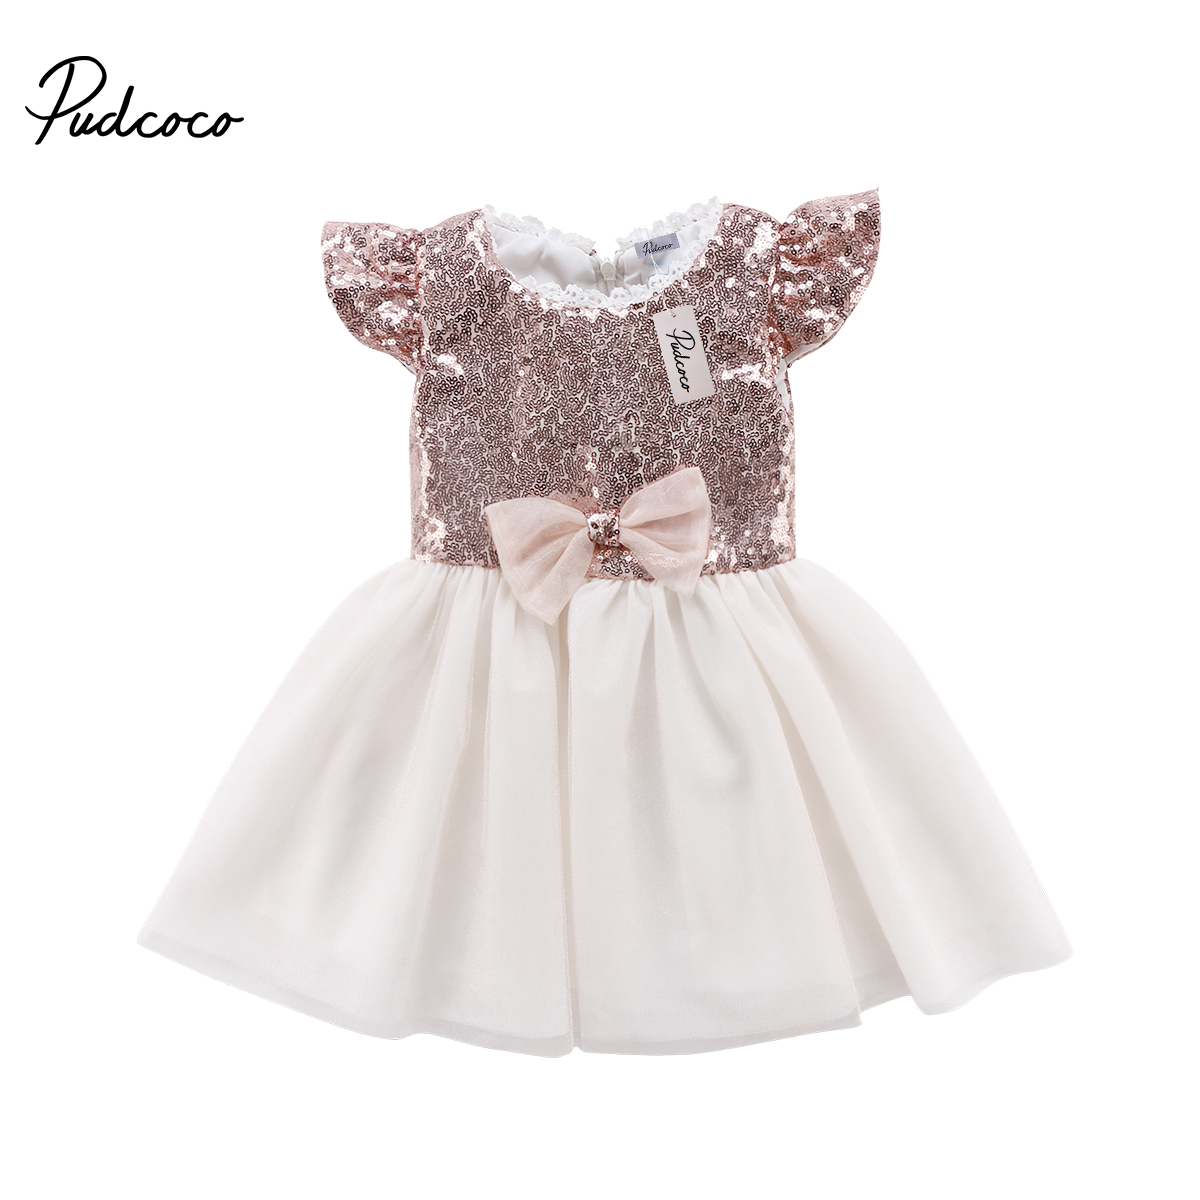 2018 Princess Girl Dress Toddler Baby Kids Girls Party Lace Tulle Dress Infant Kid Girl Sequin Dresses Bowknot Sundress effect of rosemary extracts on the growth of skin infections